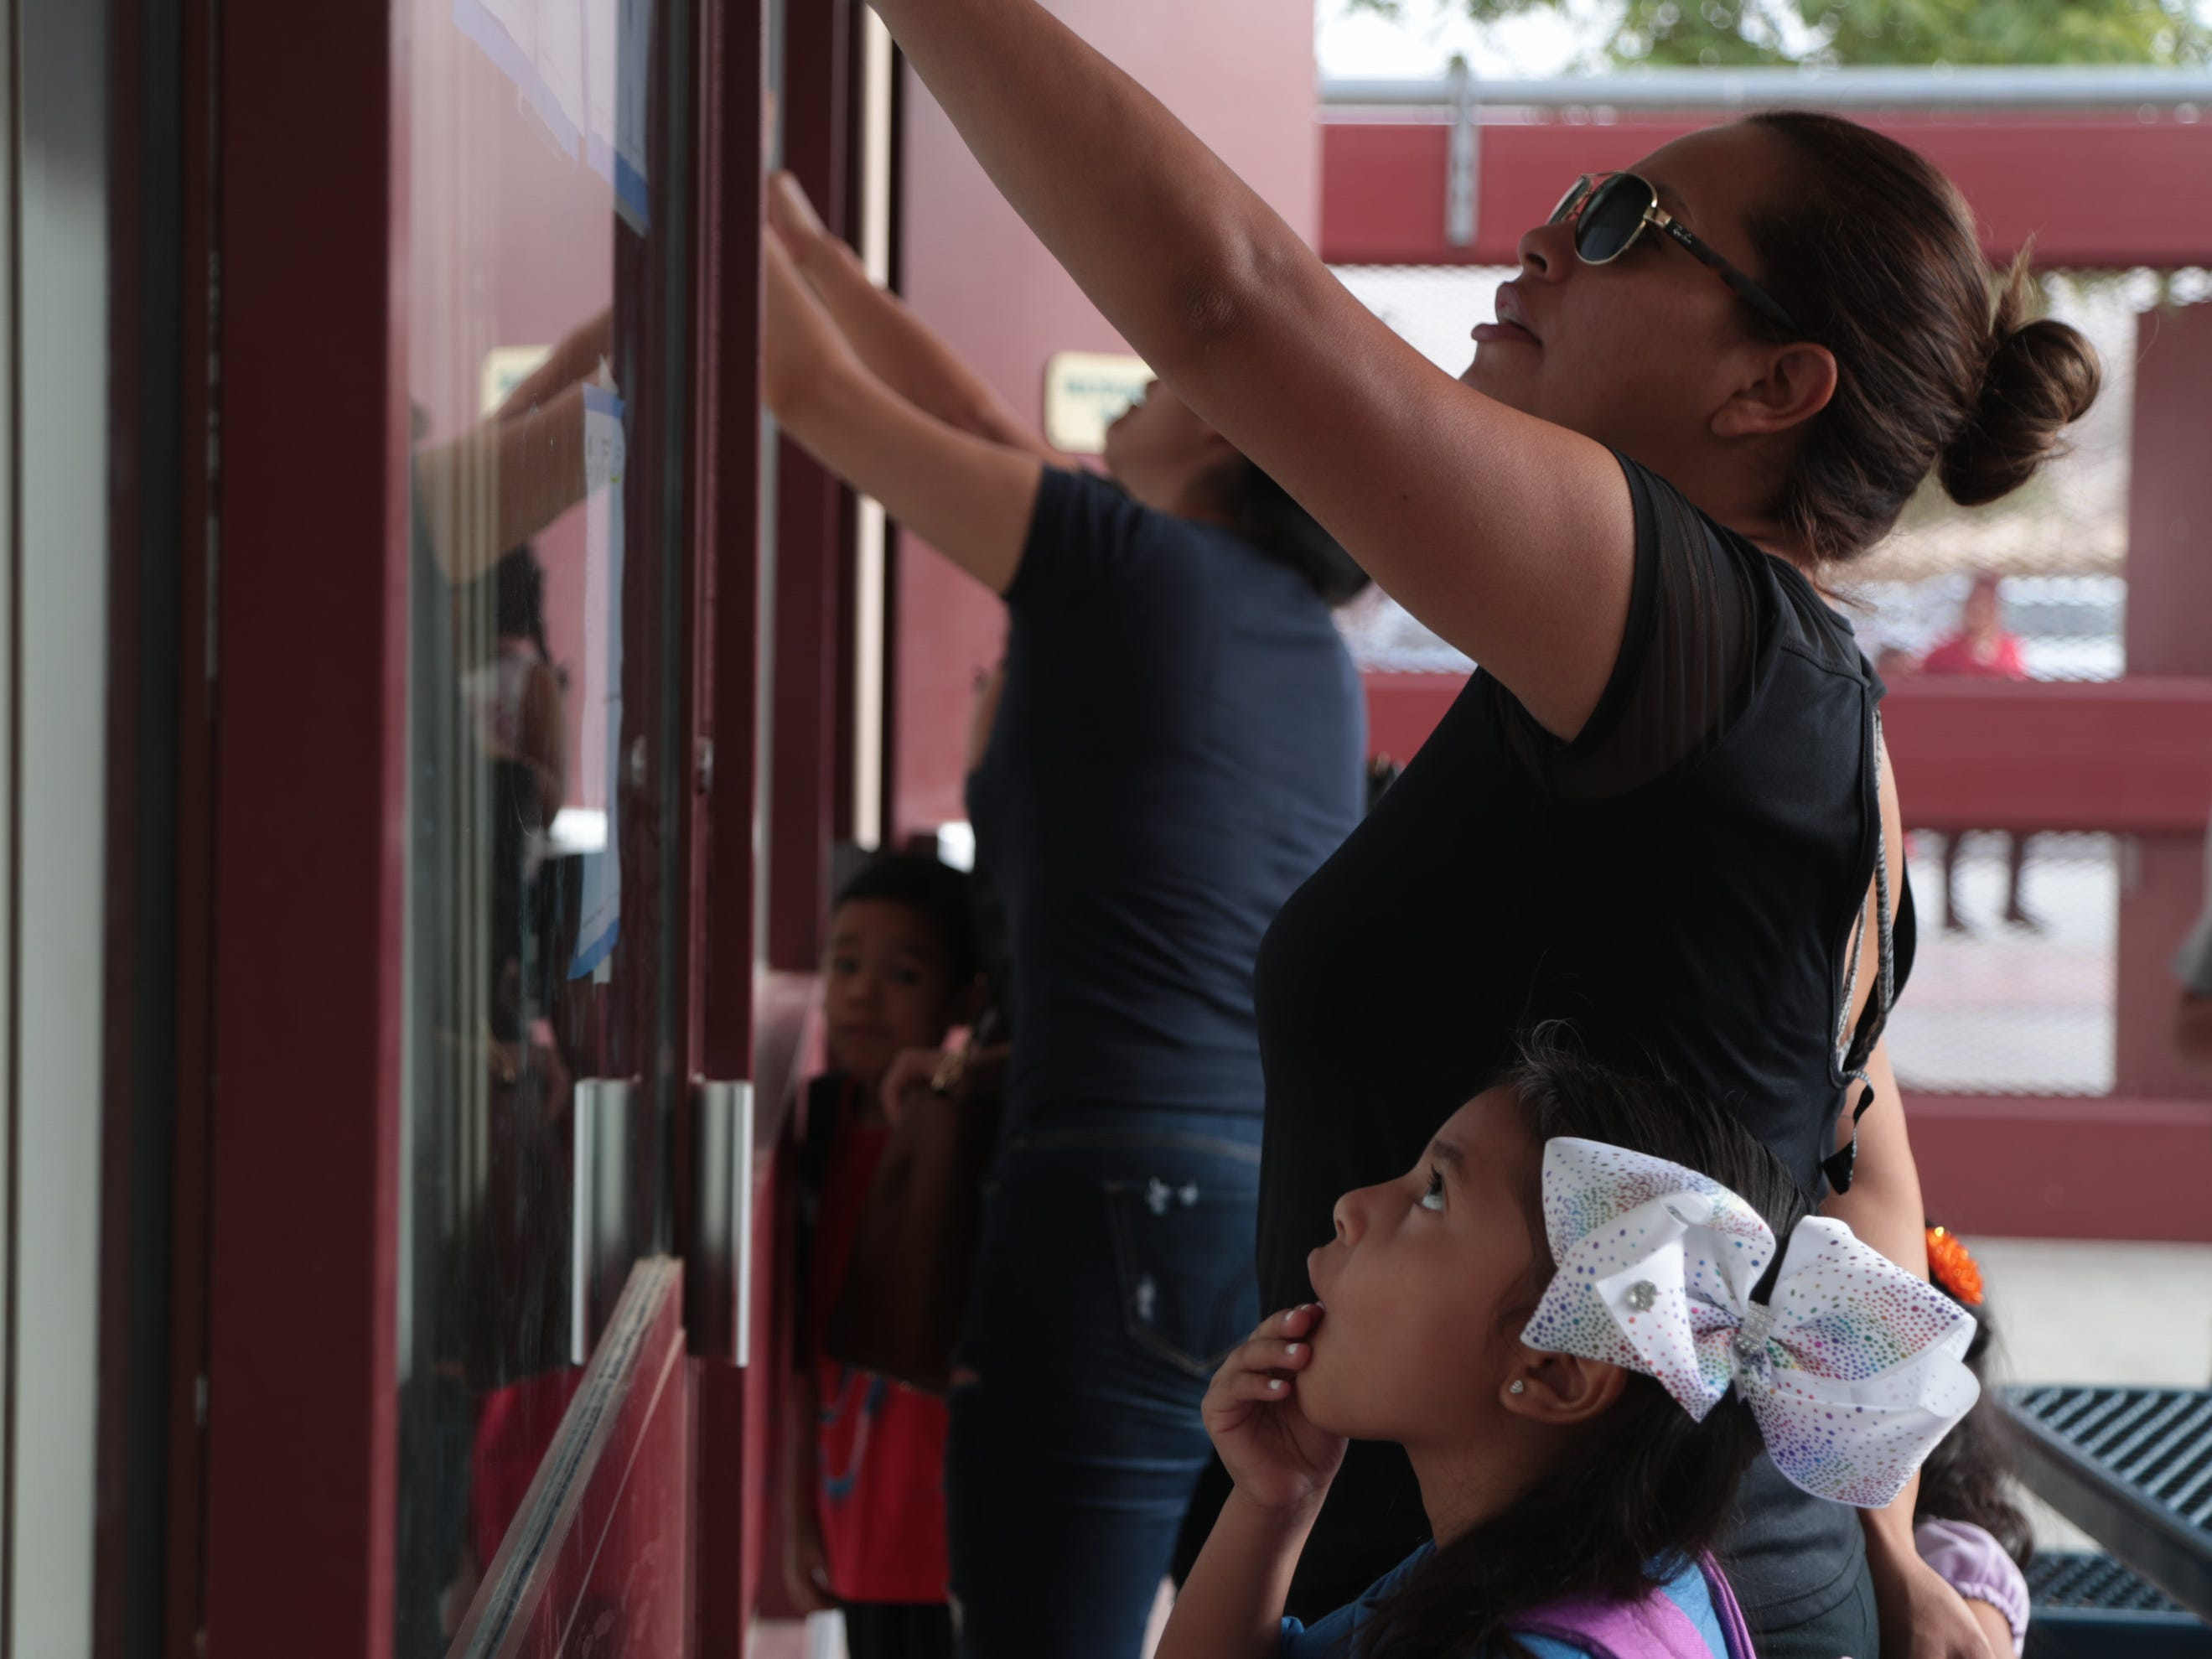 Students return for the first day of school at Bubbling Wells Elementary School in Desert Hot Springs, Calif., August 8, 2018.